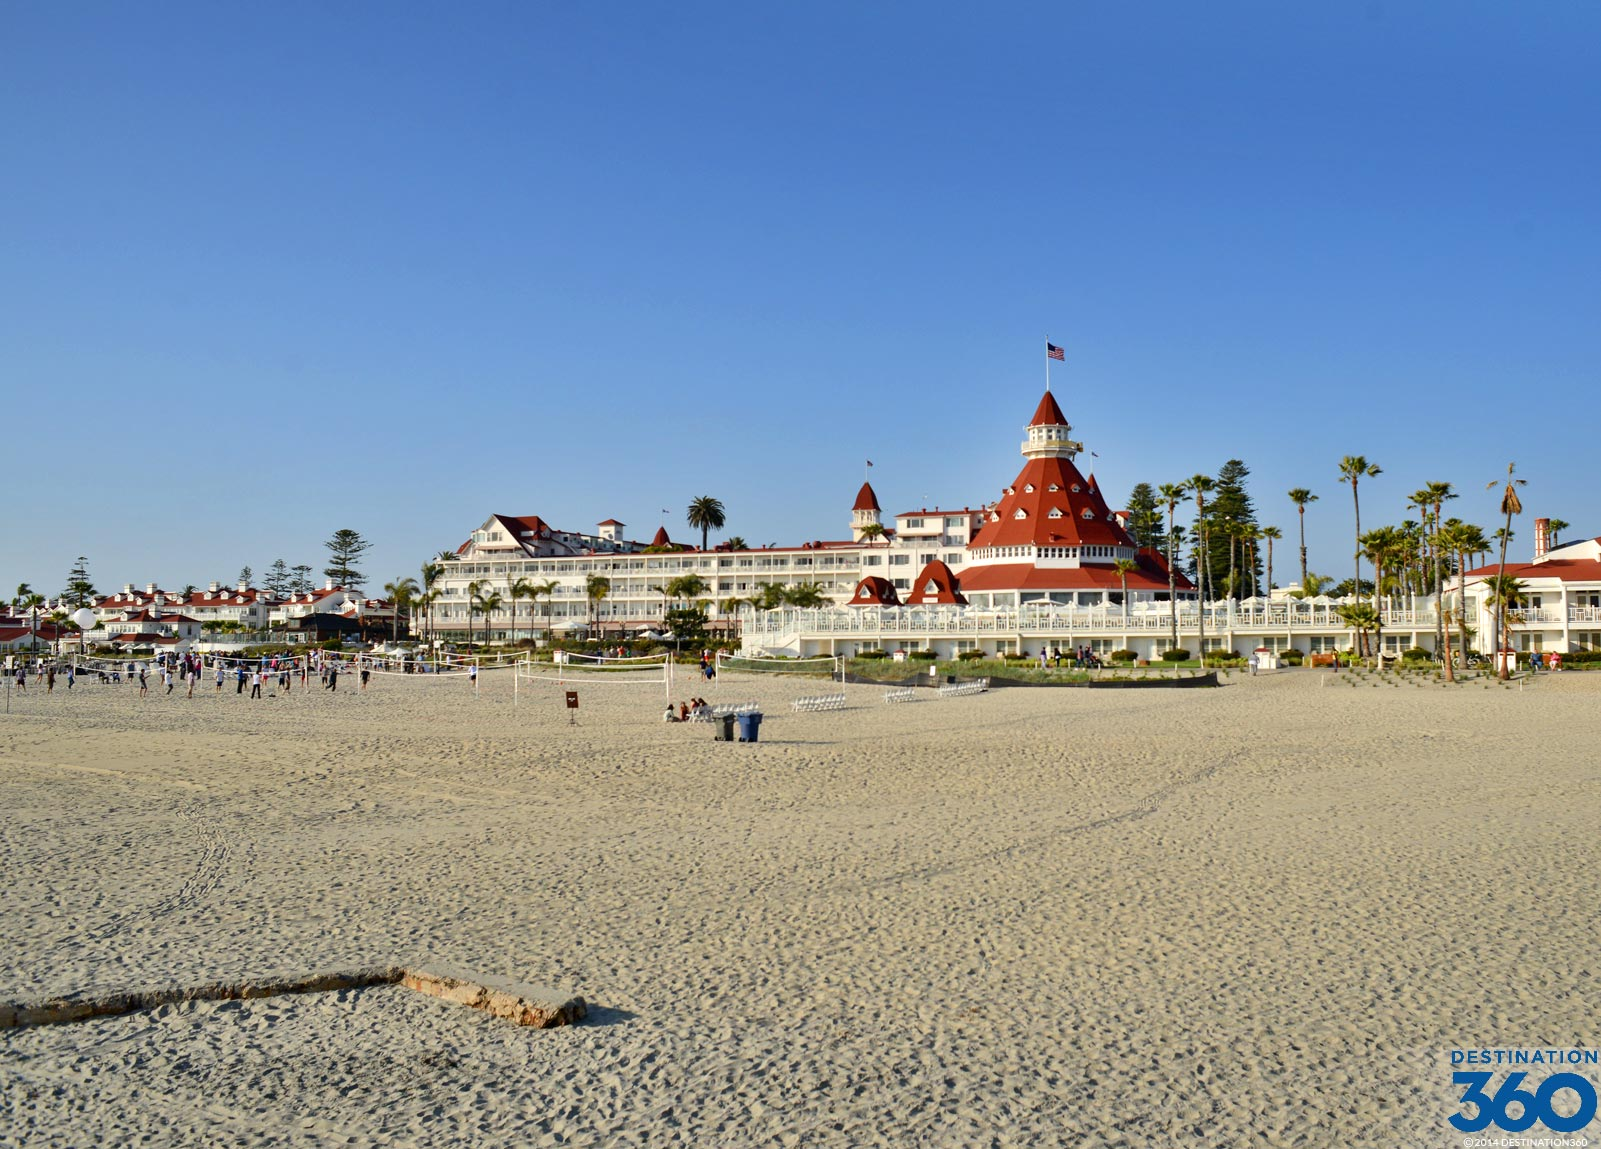 Animal Crossing Wild World Wallpaper Coronado Beach California See The Best Options For